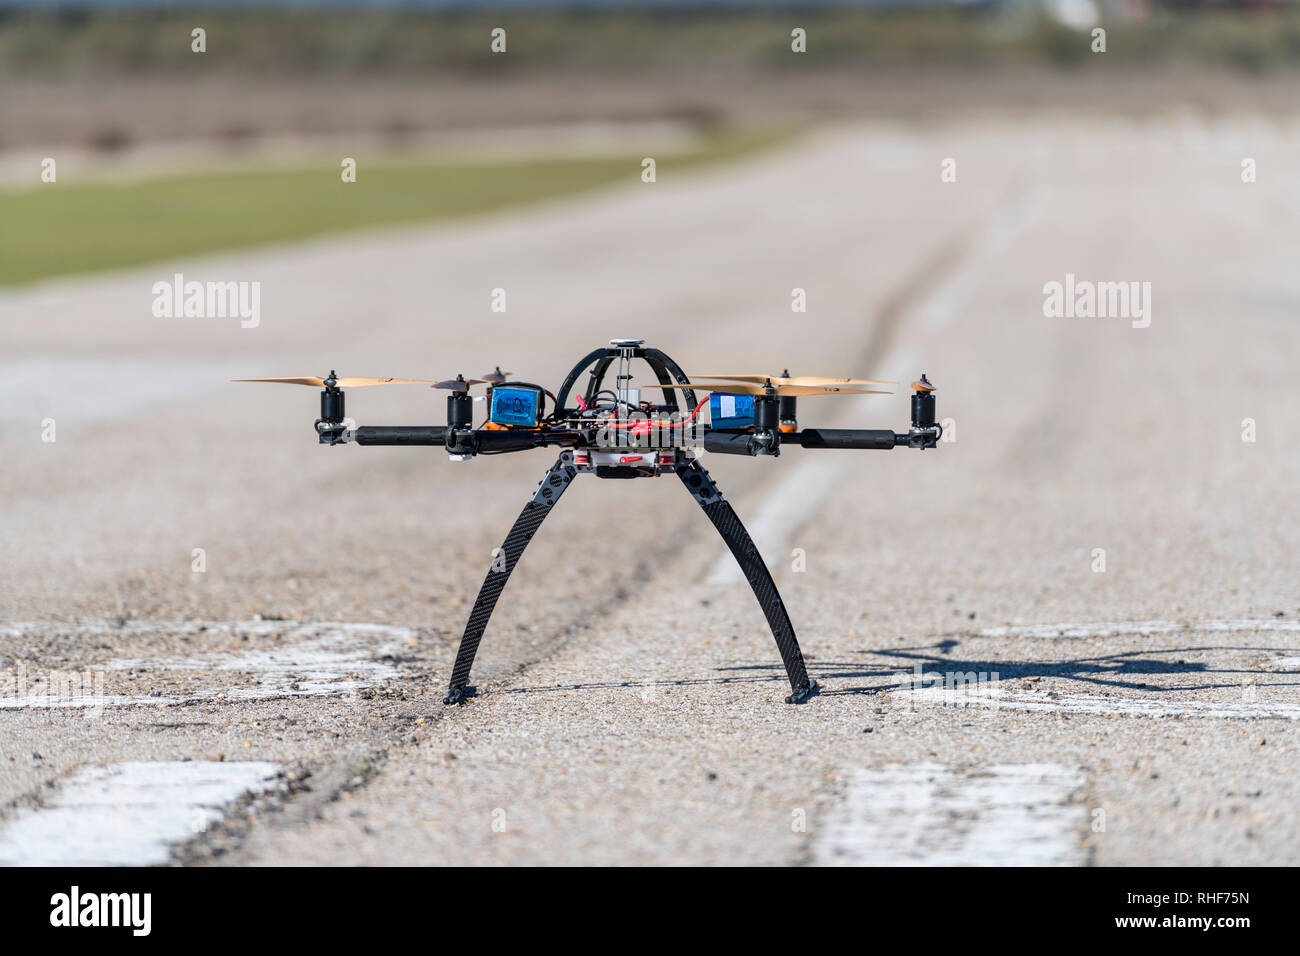 Professional drone standing ready for take off - Stock Image